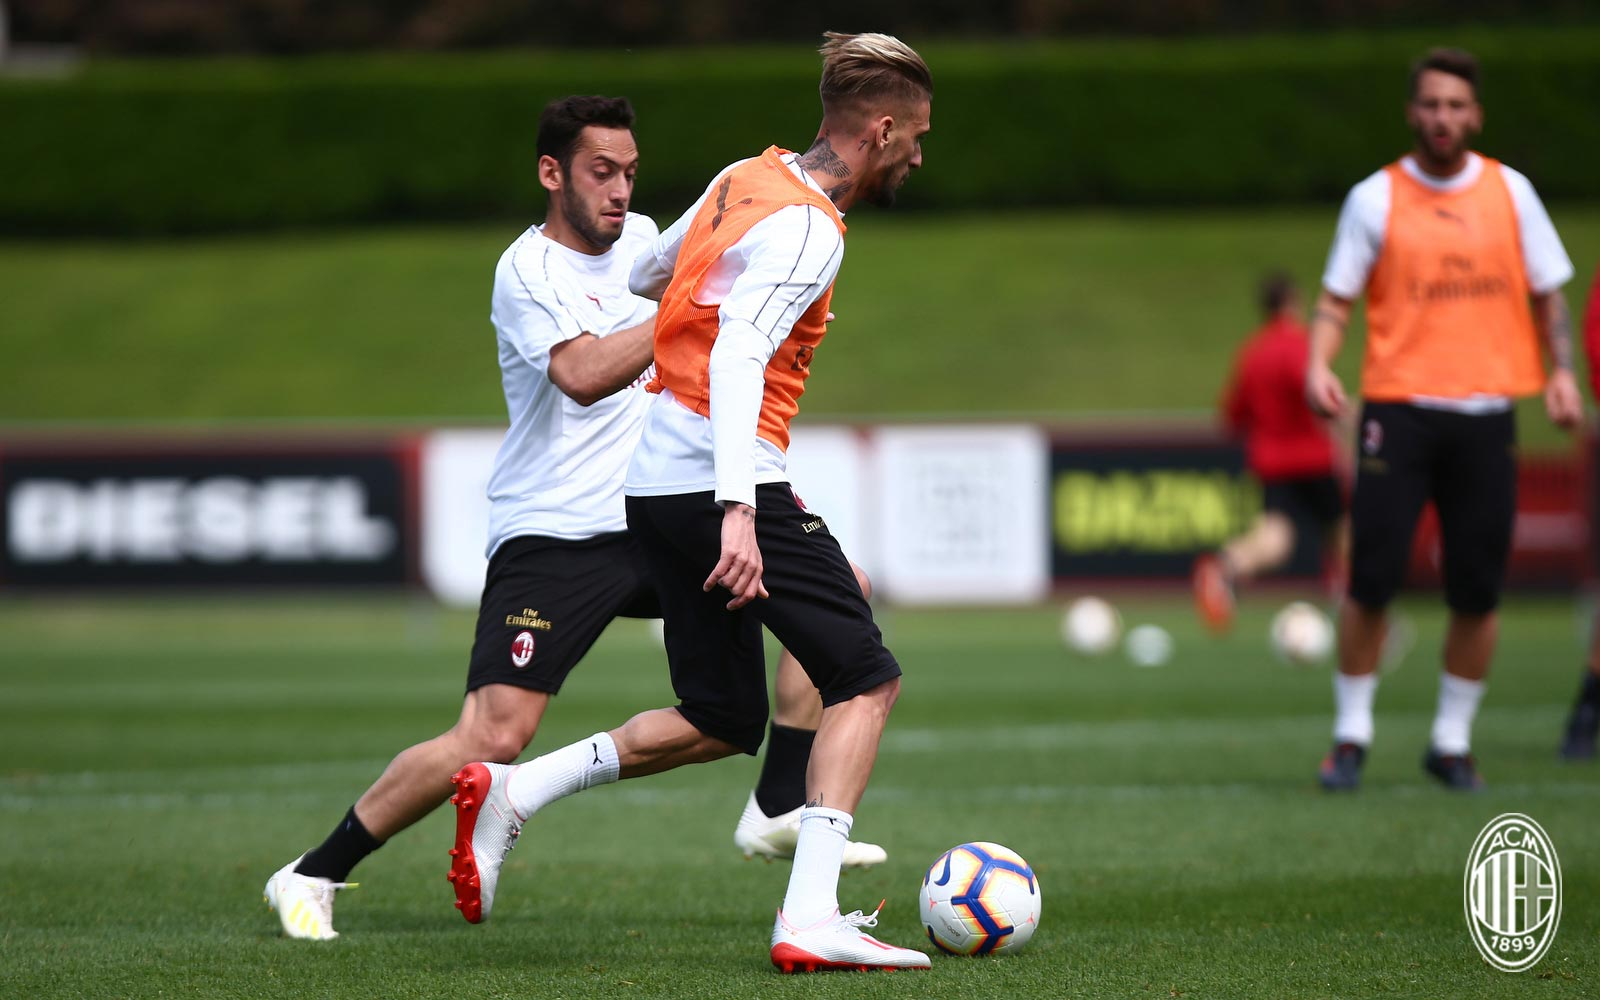 0ecd8f285 ... Samu Castillejo has become the first player to be spotted wearing the  launch colorway of the next-generation Adidas X 19.1 football boots in  training.